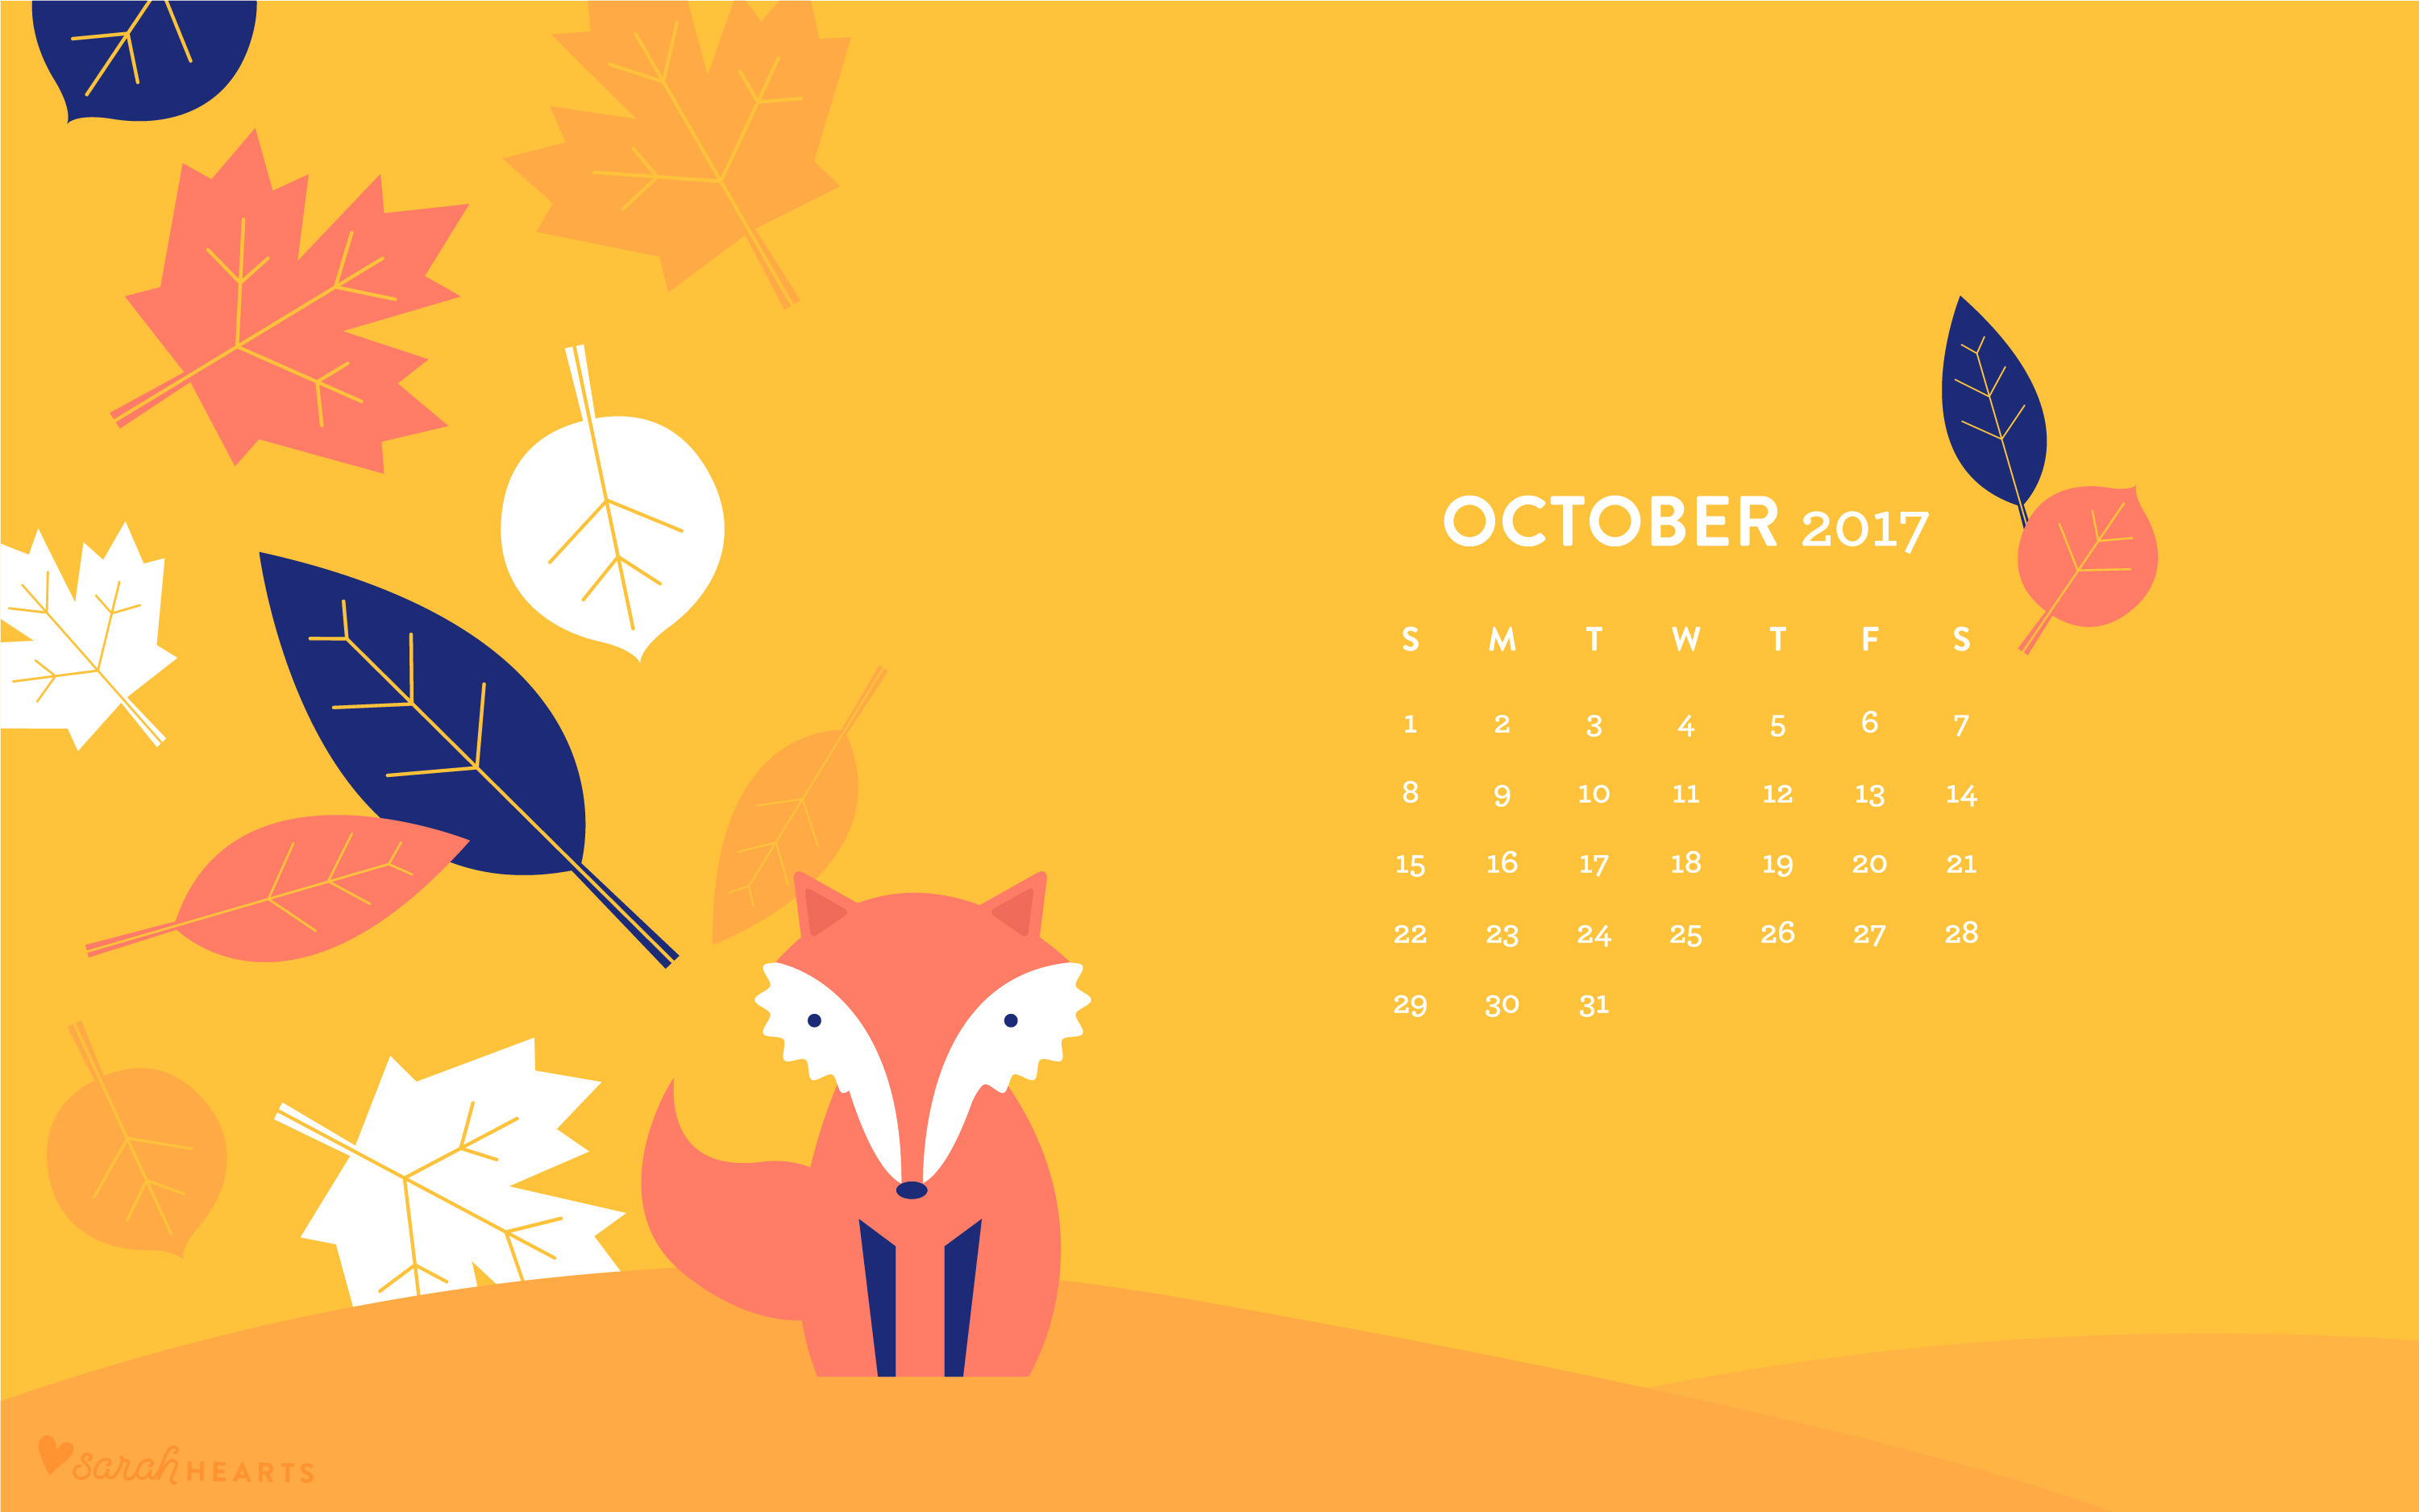 DOWNLOAD THE OCTOBER WALLPAPER Desktop